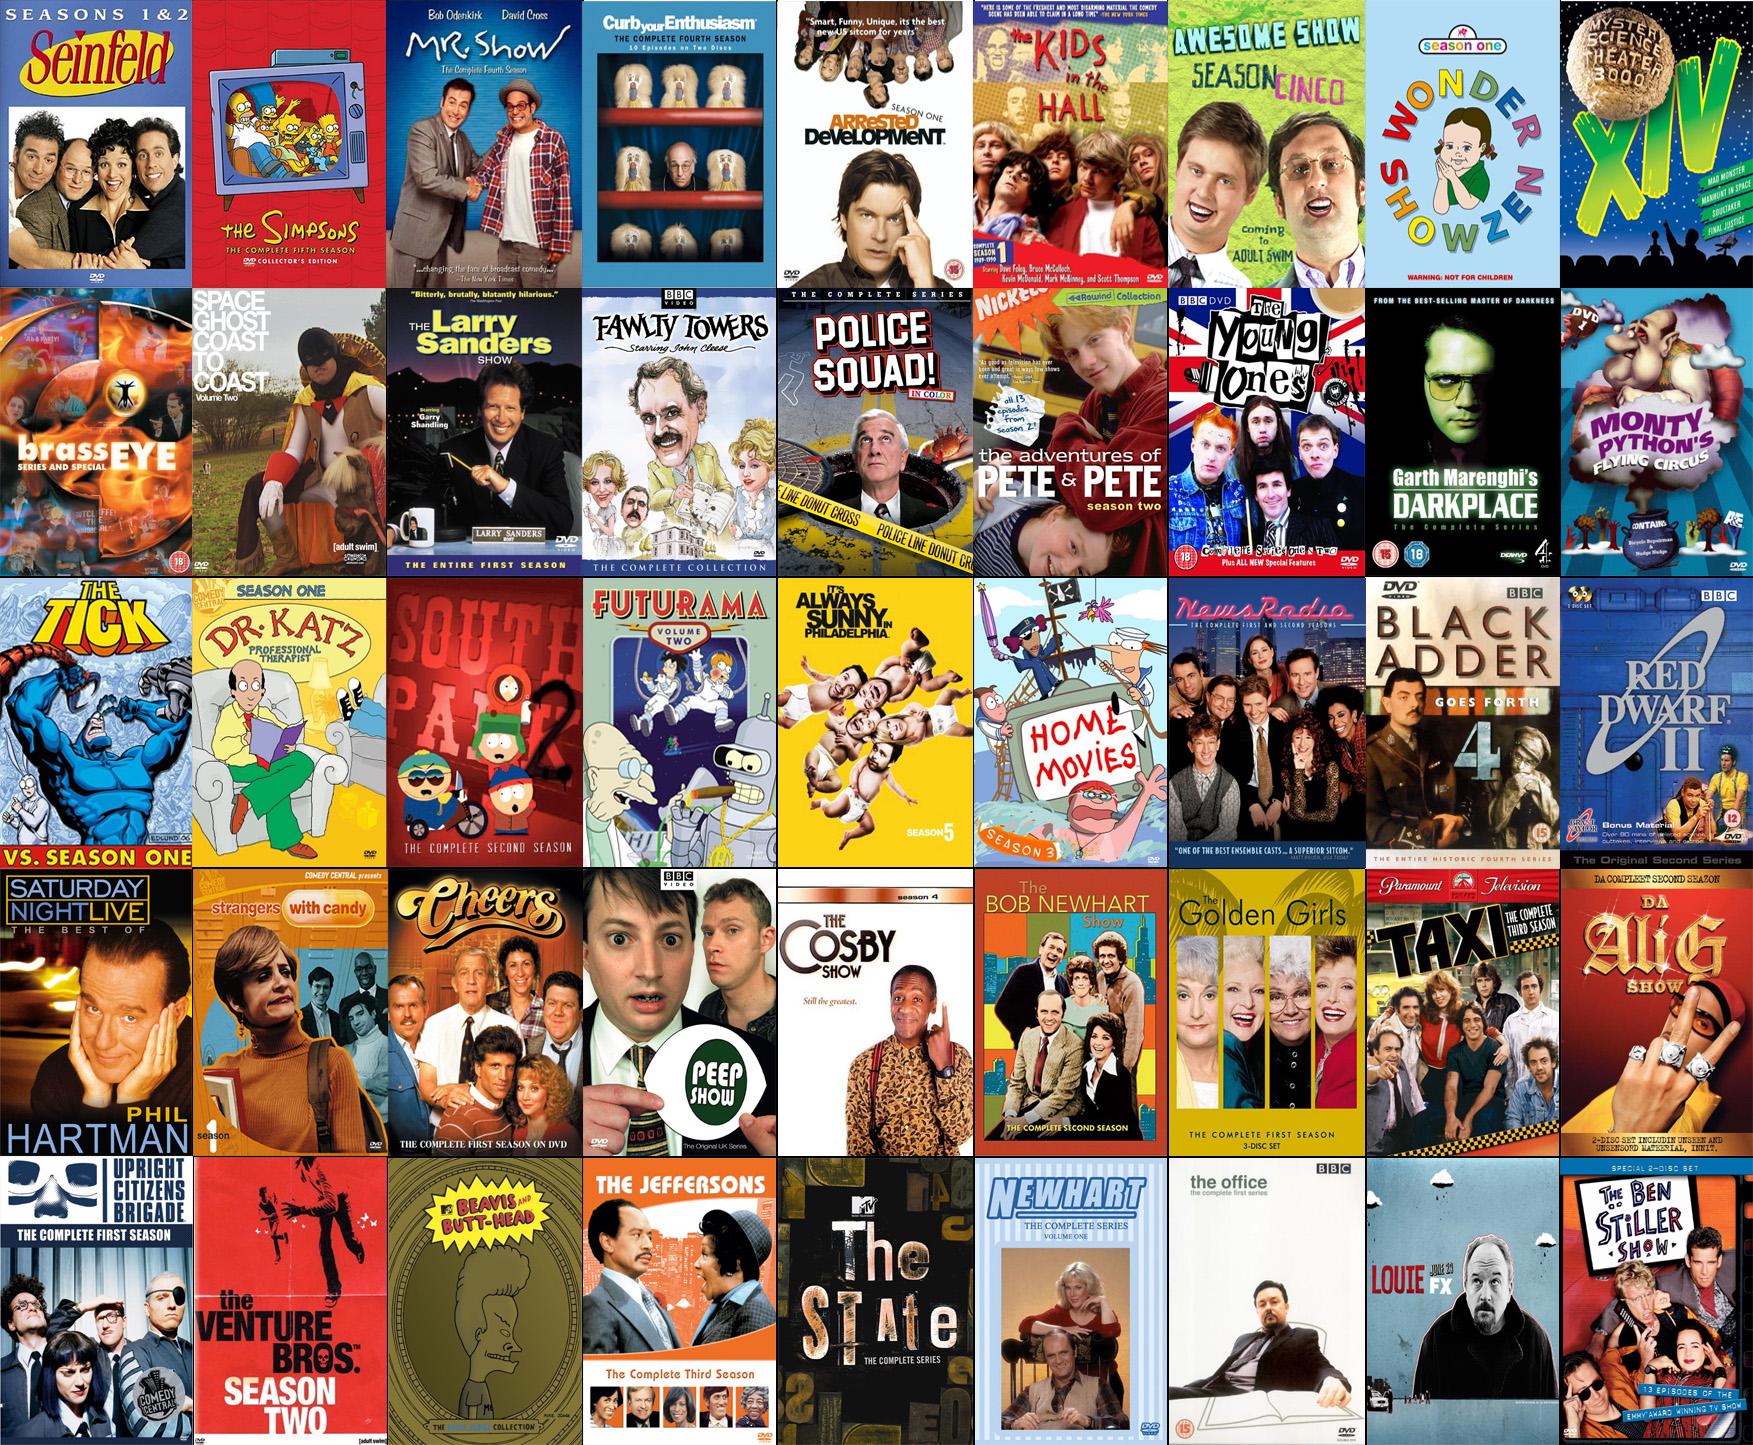 tv programs Entertainmentie, complete tv listings guide, soap watch, recommended tv hightlights, whats on now, tv tonight, tv trailers and clips, trending tv.